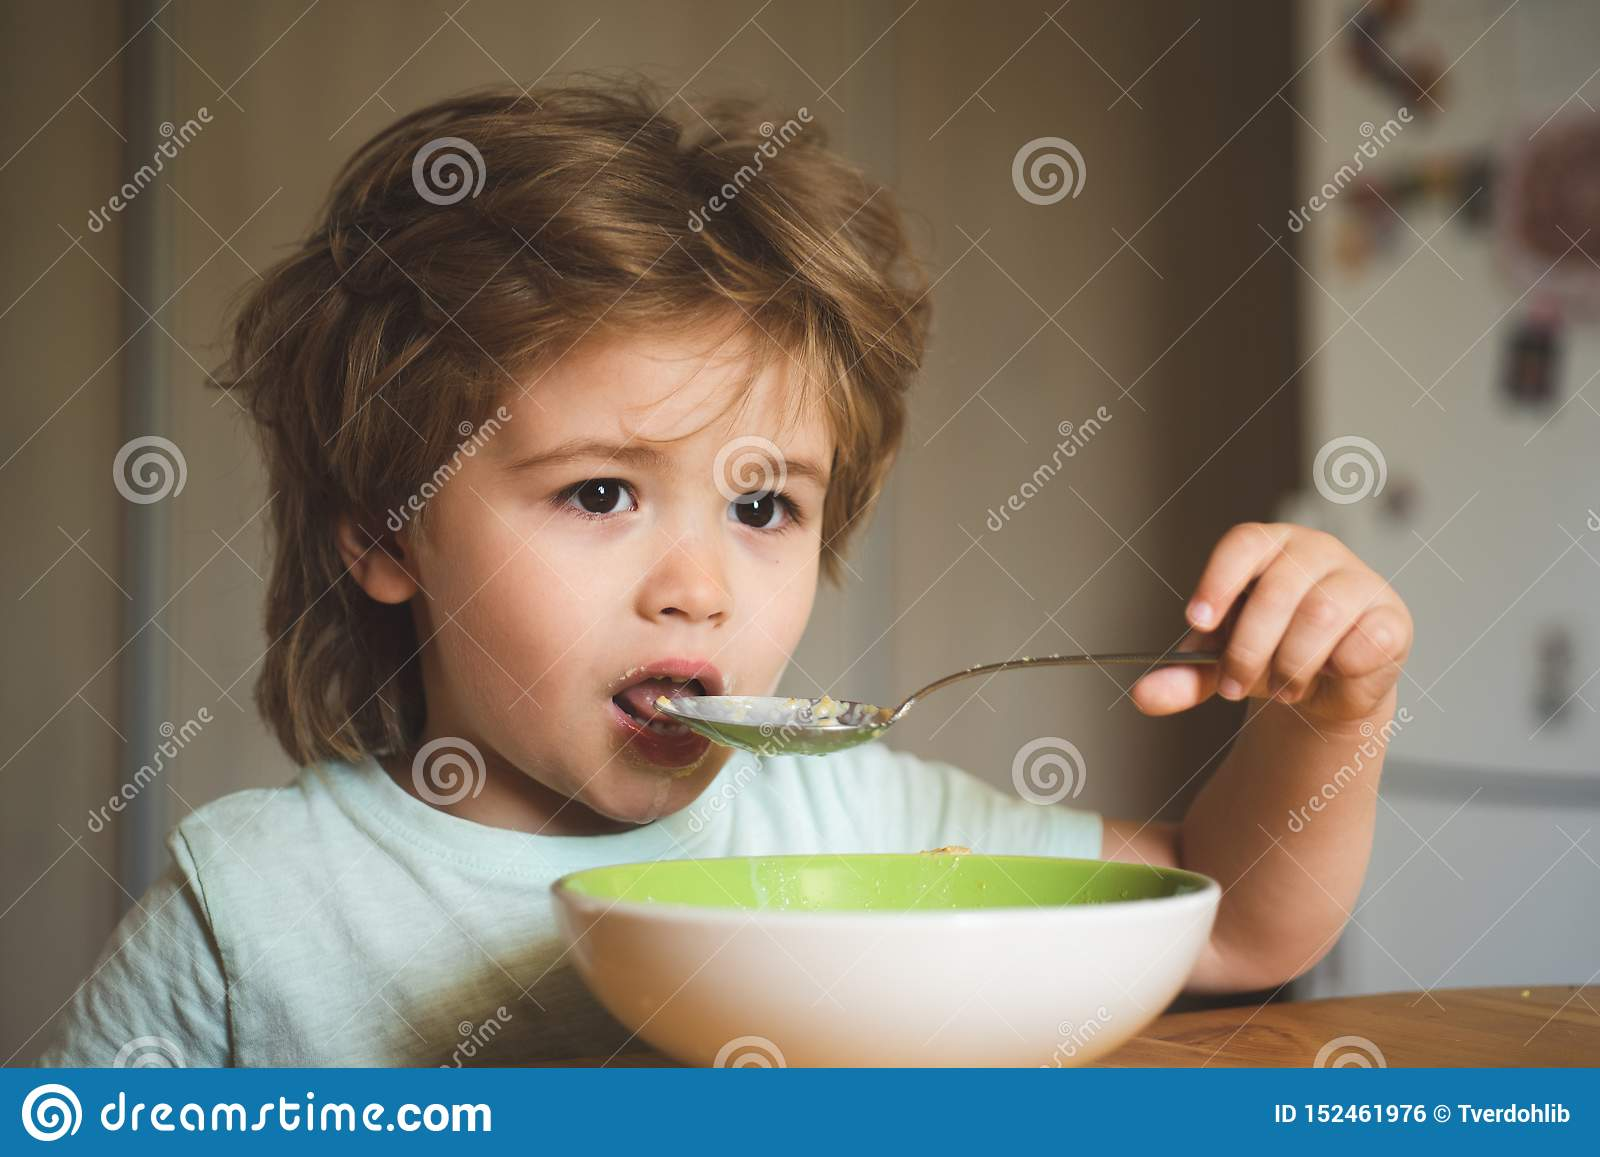 Tasty kids breakfast. Cute child eating breakfast at home. Baby eating. Good morning in Happy family. Hungry little boy